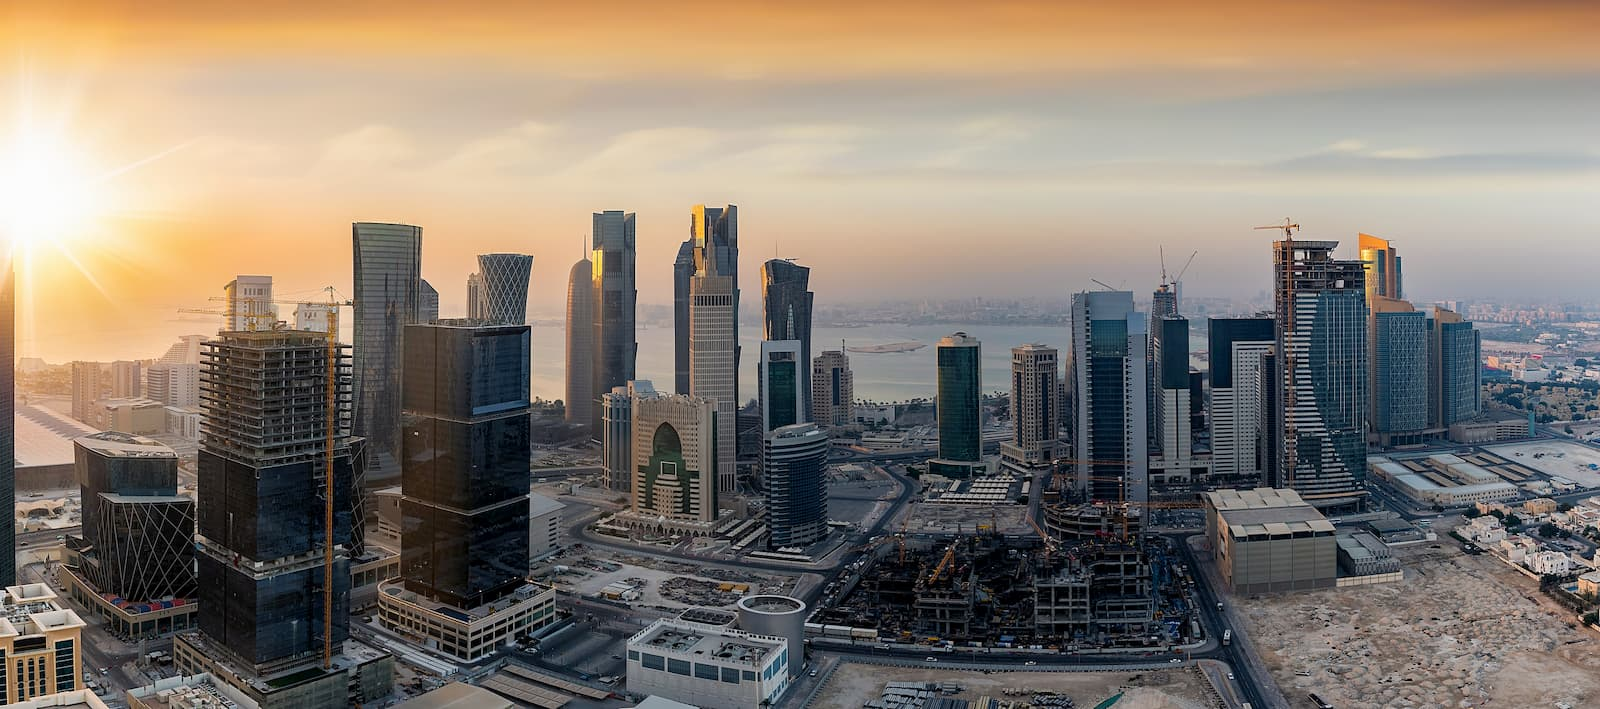 This is an image of buildings in Qatar.